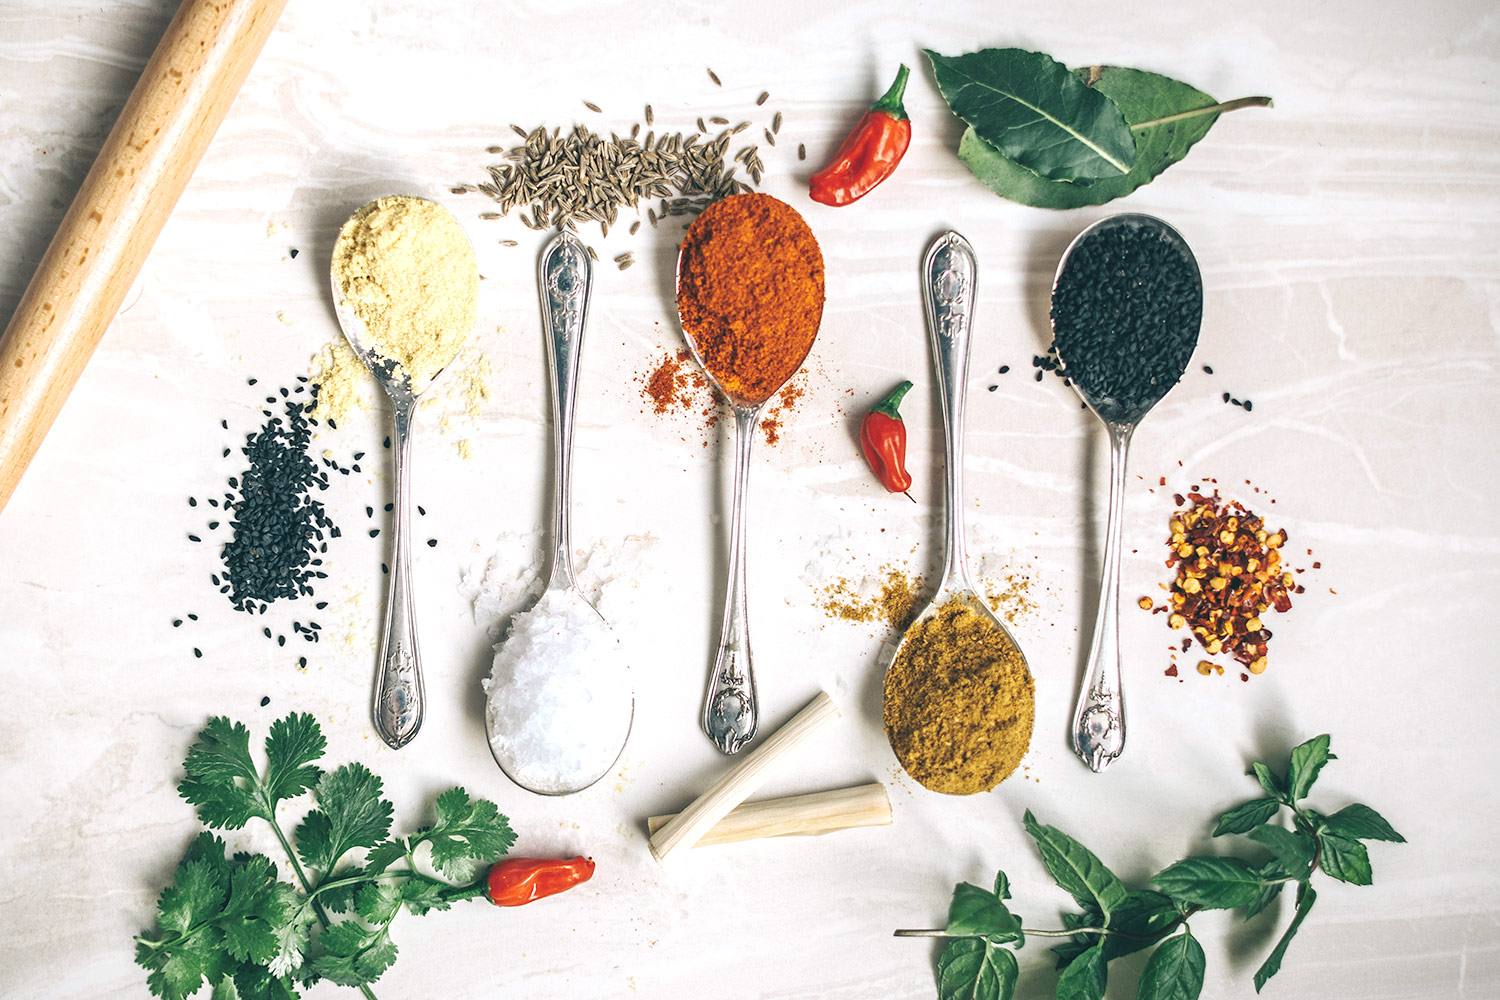 Chinese Nutrition + Herbs - My clinic will teach you how to incorporate food as a natural part of your healing process and how to use Chinese herbs instead of pharmaceuticals.